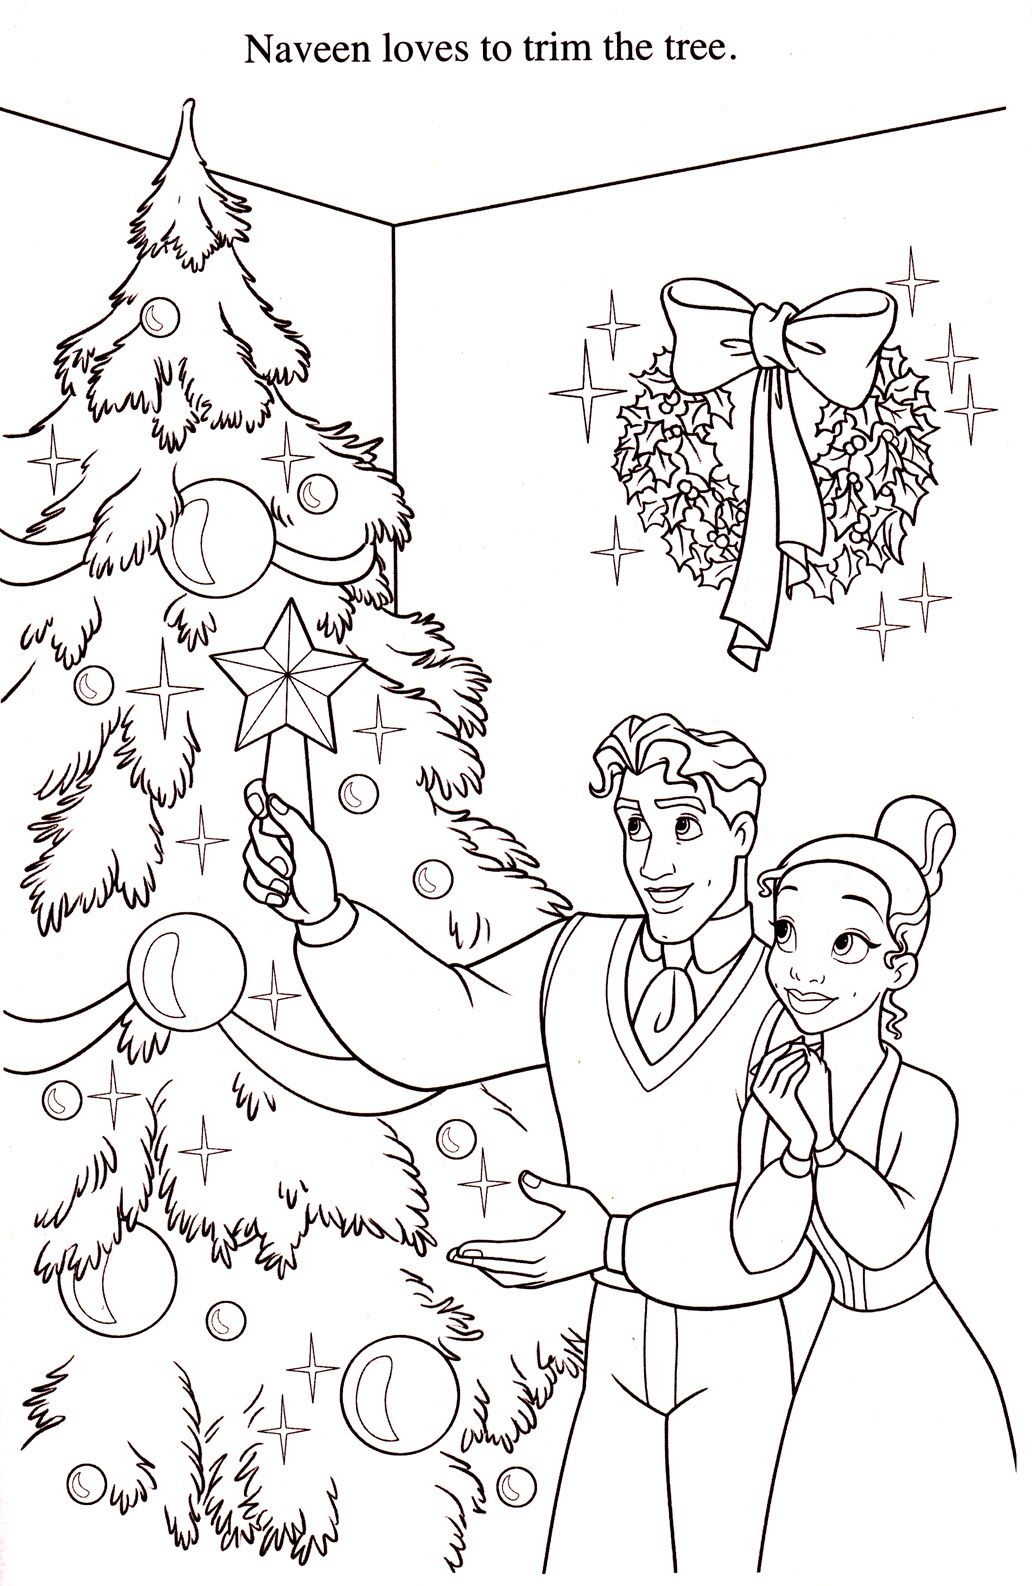 naveen and tiana chris tree decorating #tiana #christmas #